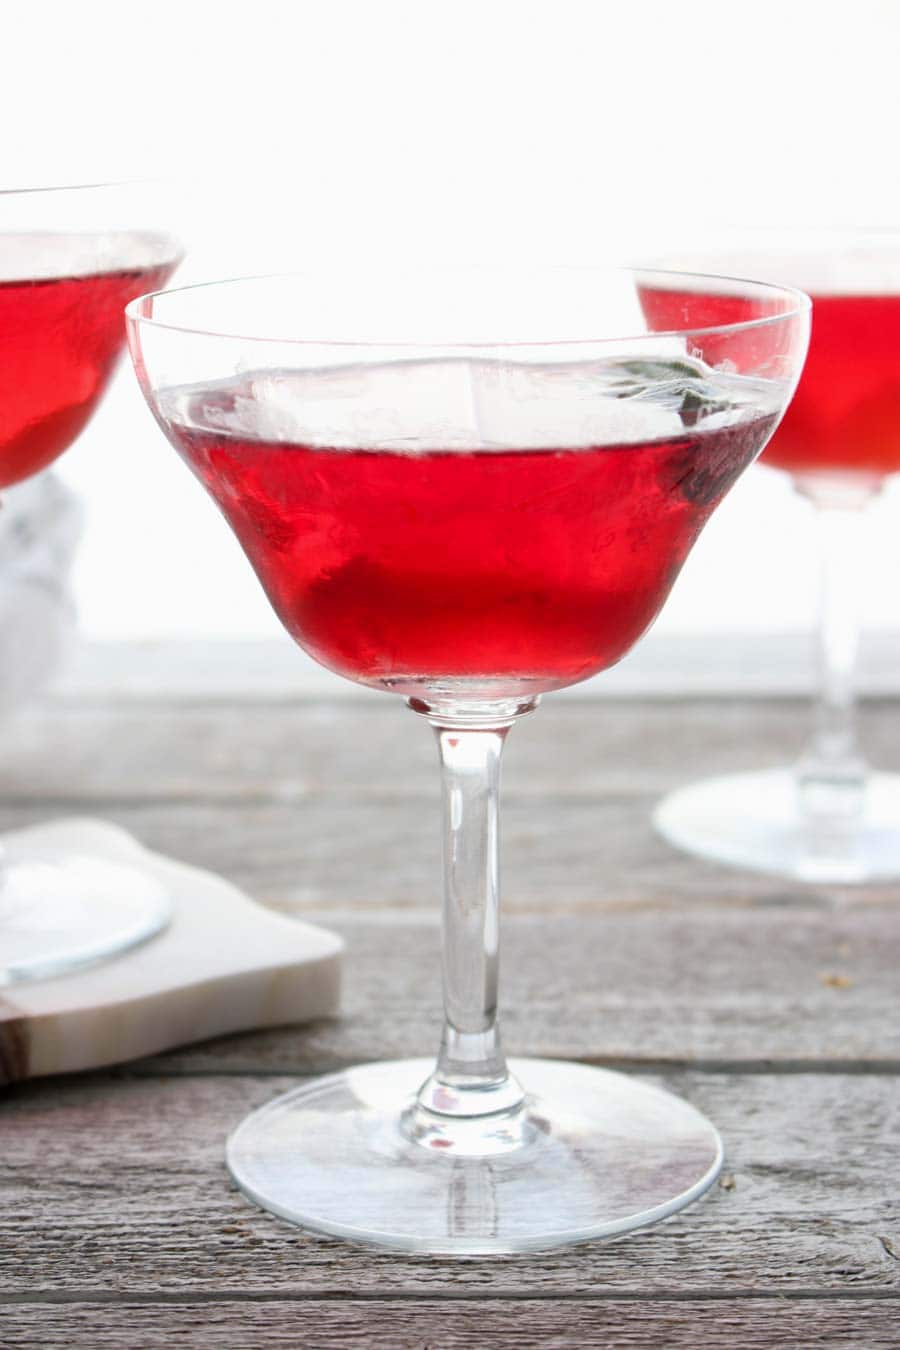 Cranberry Sage Martini very close up